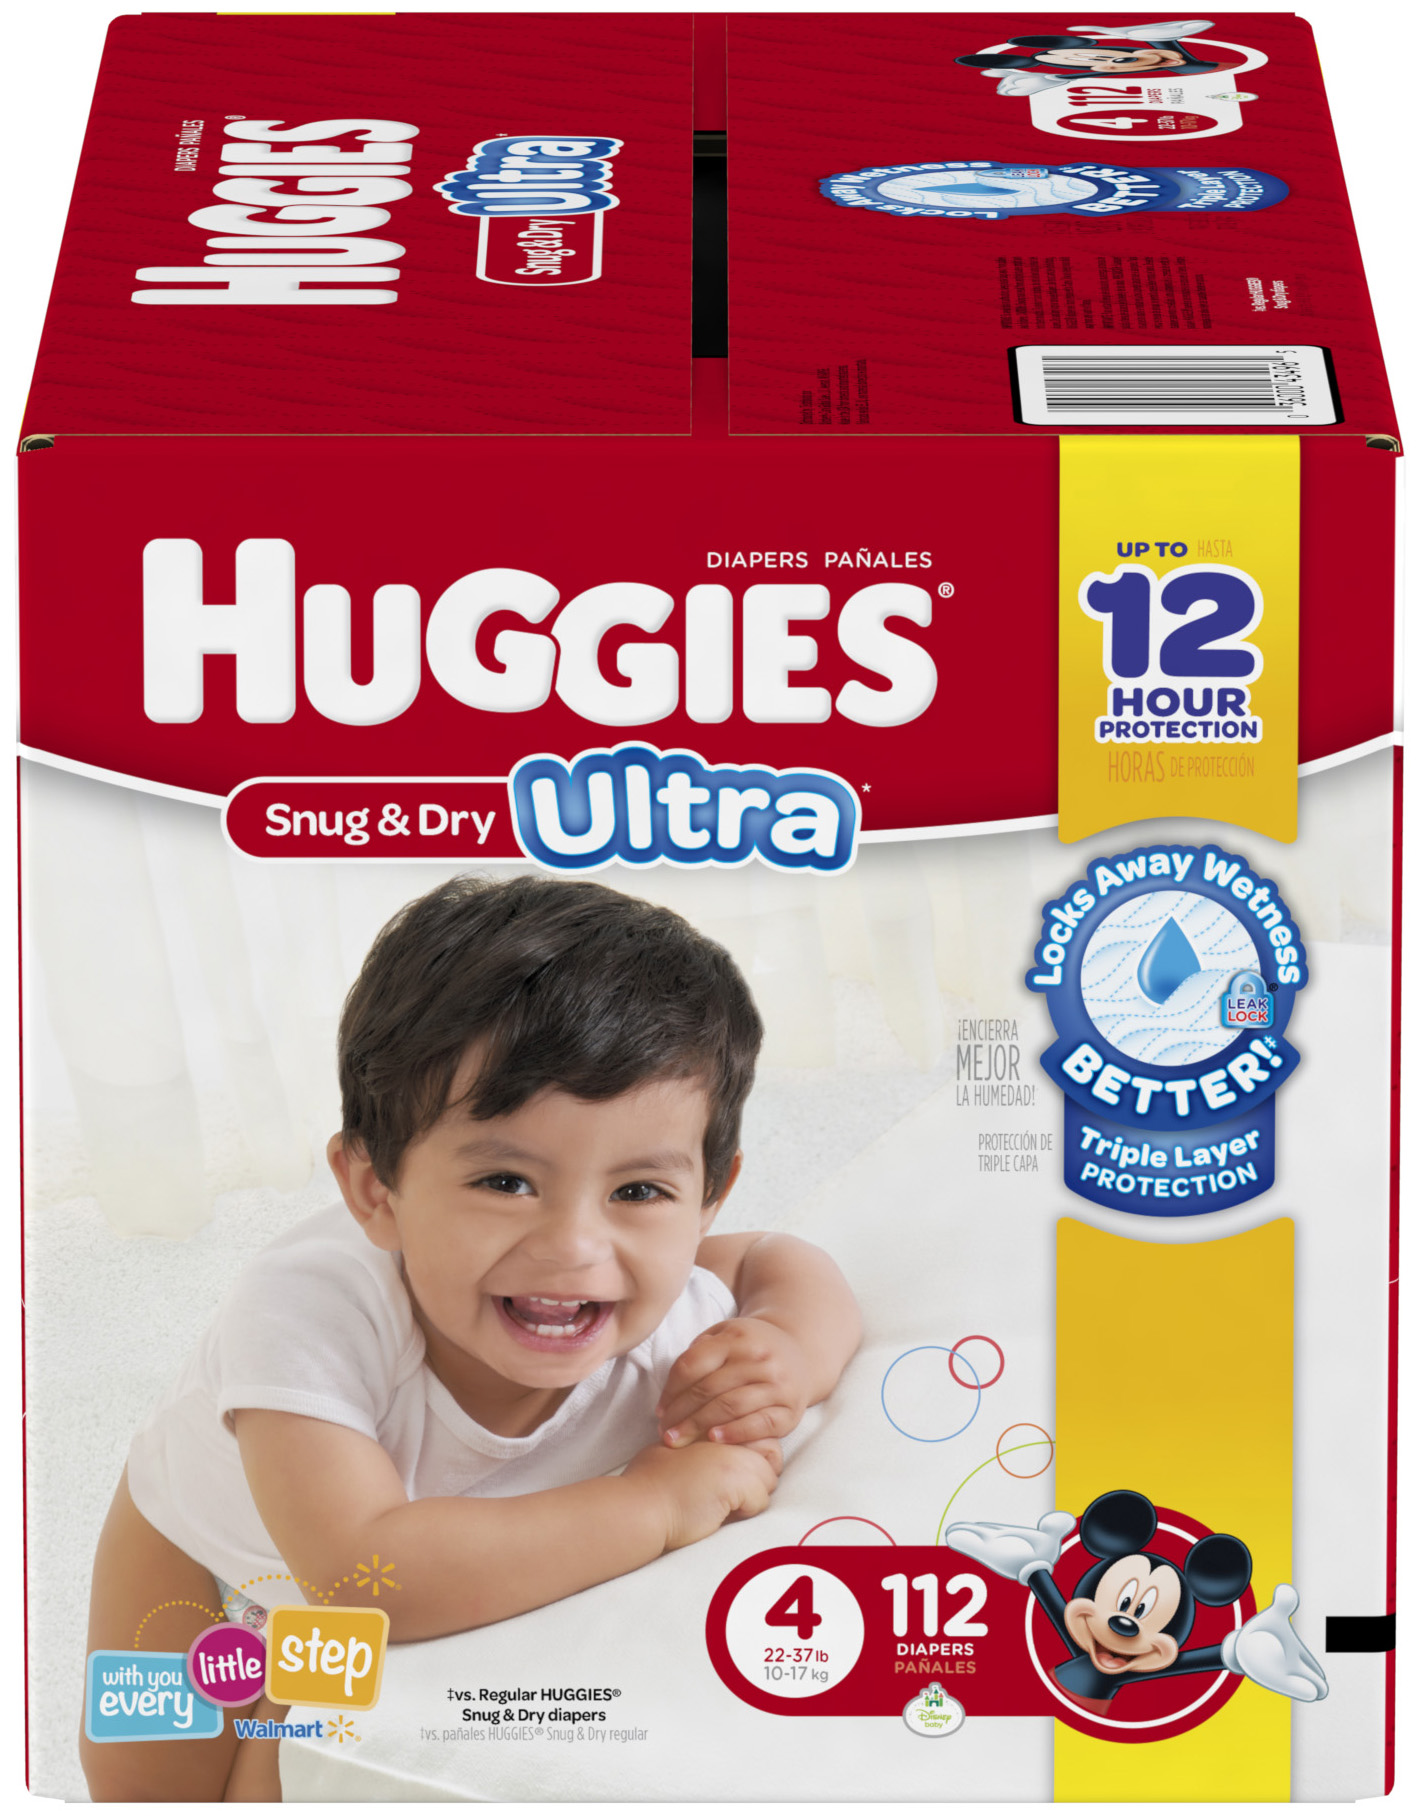 HUGGIES Snug & Dry Ultra Diapers, Size 4, 112 Diapers - Walmart.com